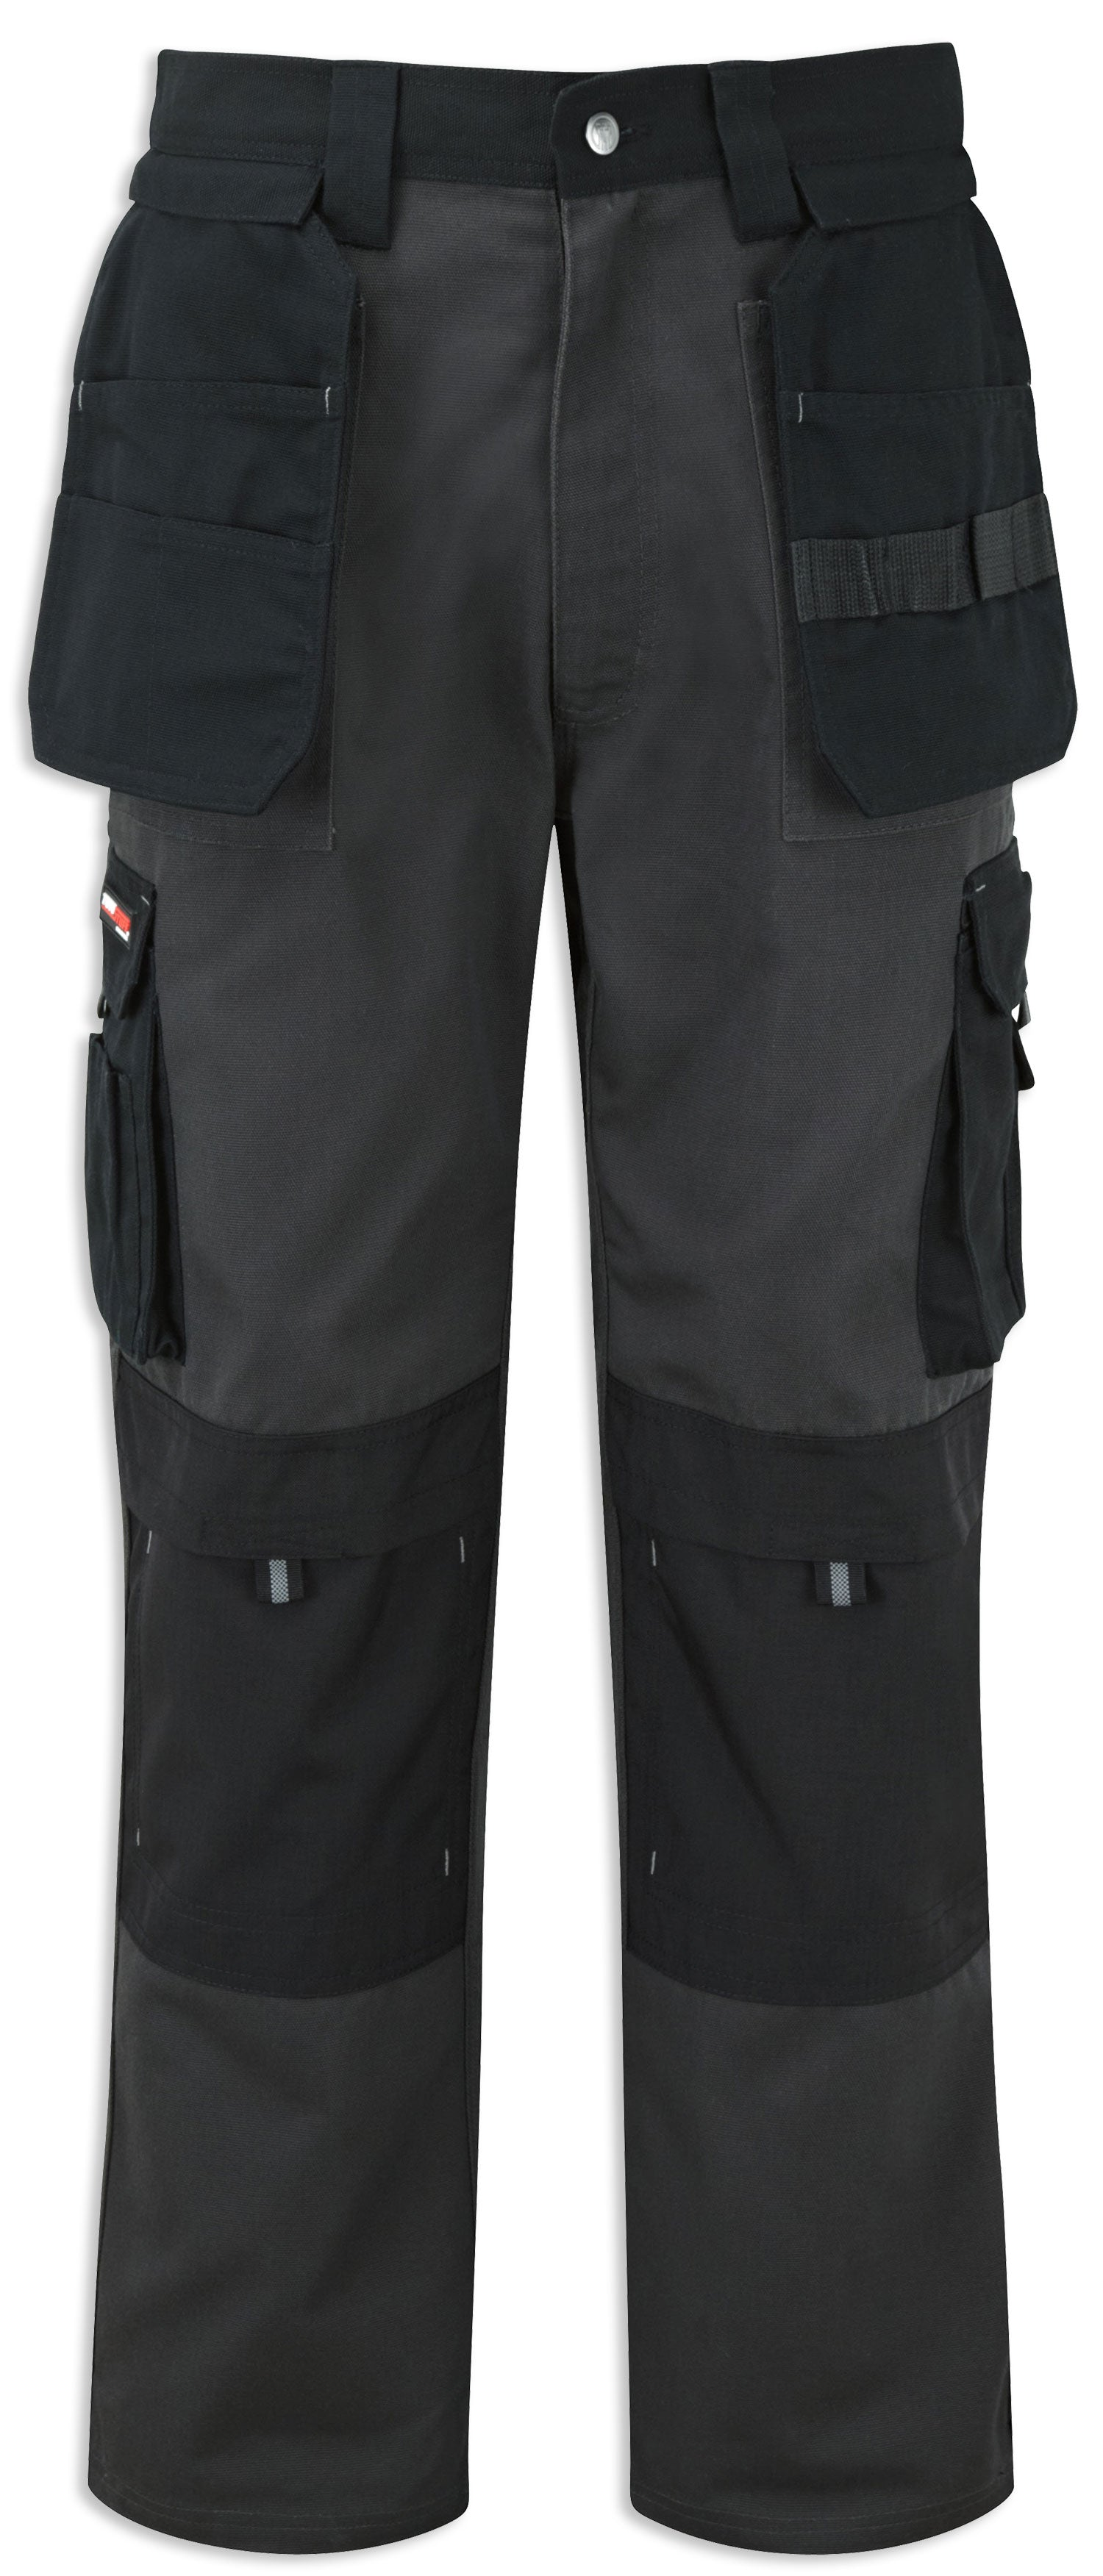 Grey Black Castle Tuffstuff Extreme Work Trousers